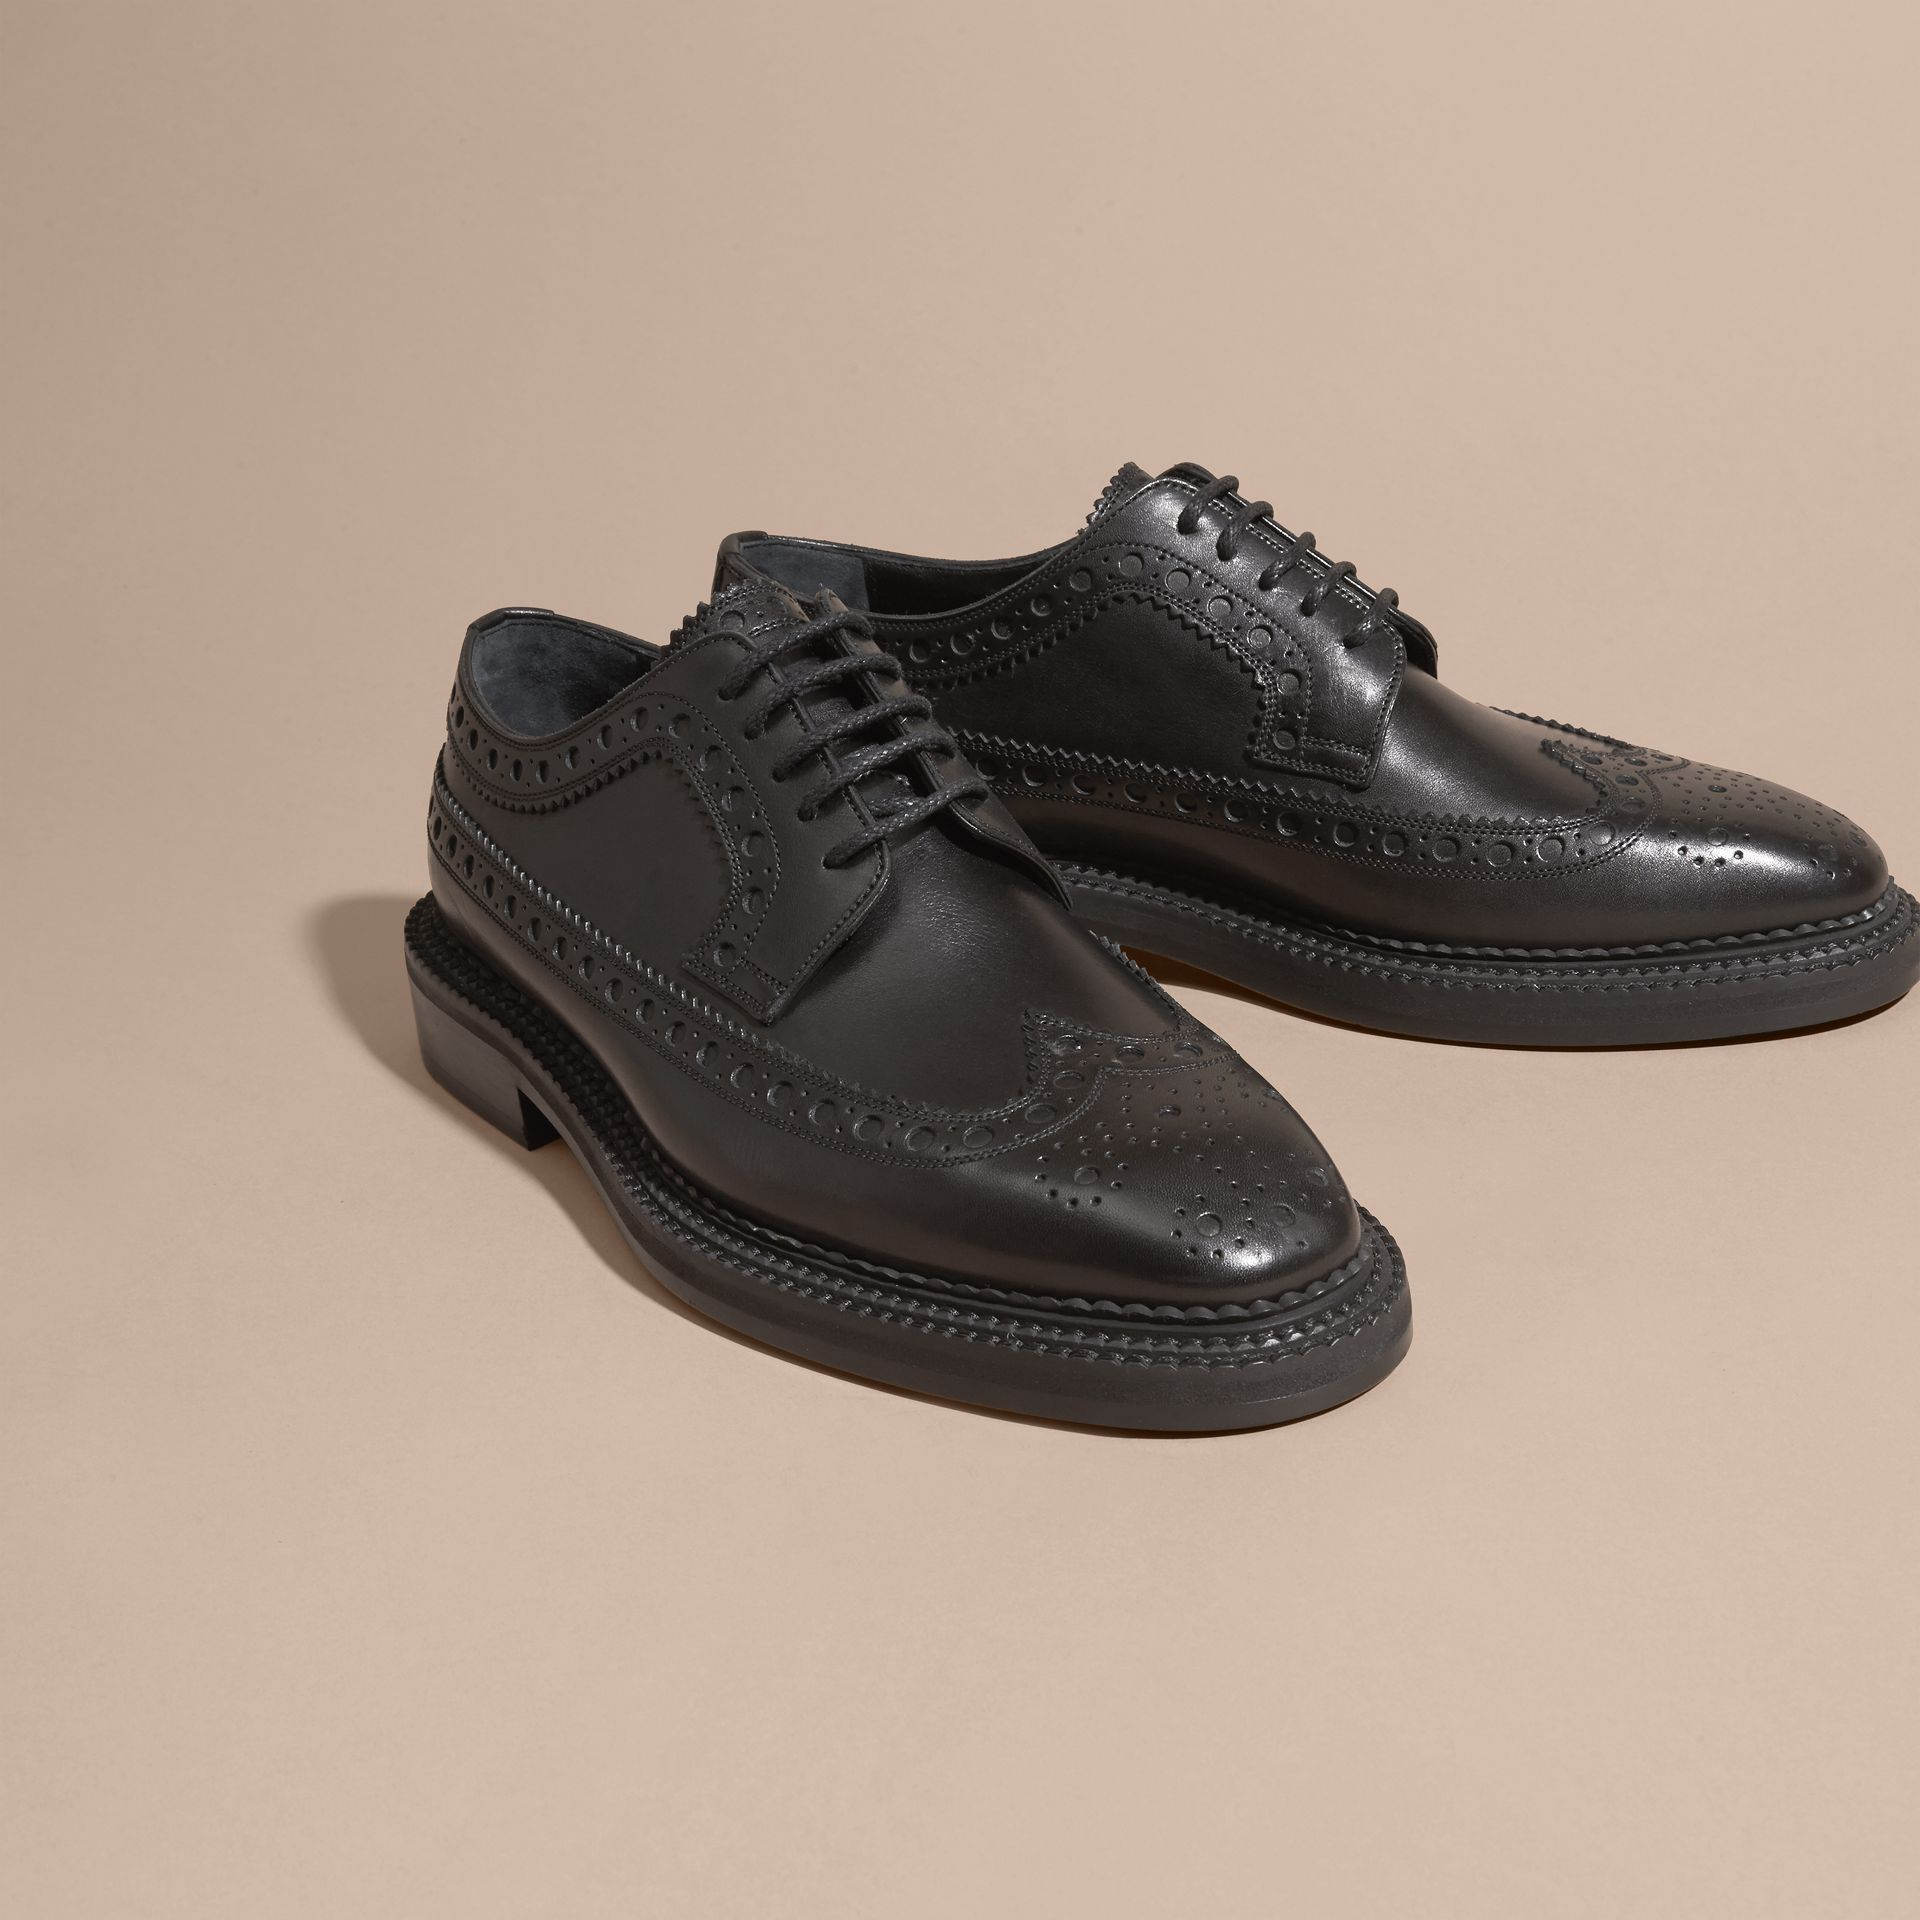 Leather Wingtip Brogues in Black - Men | Burberry - gallery image 3